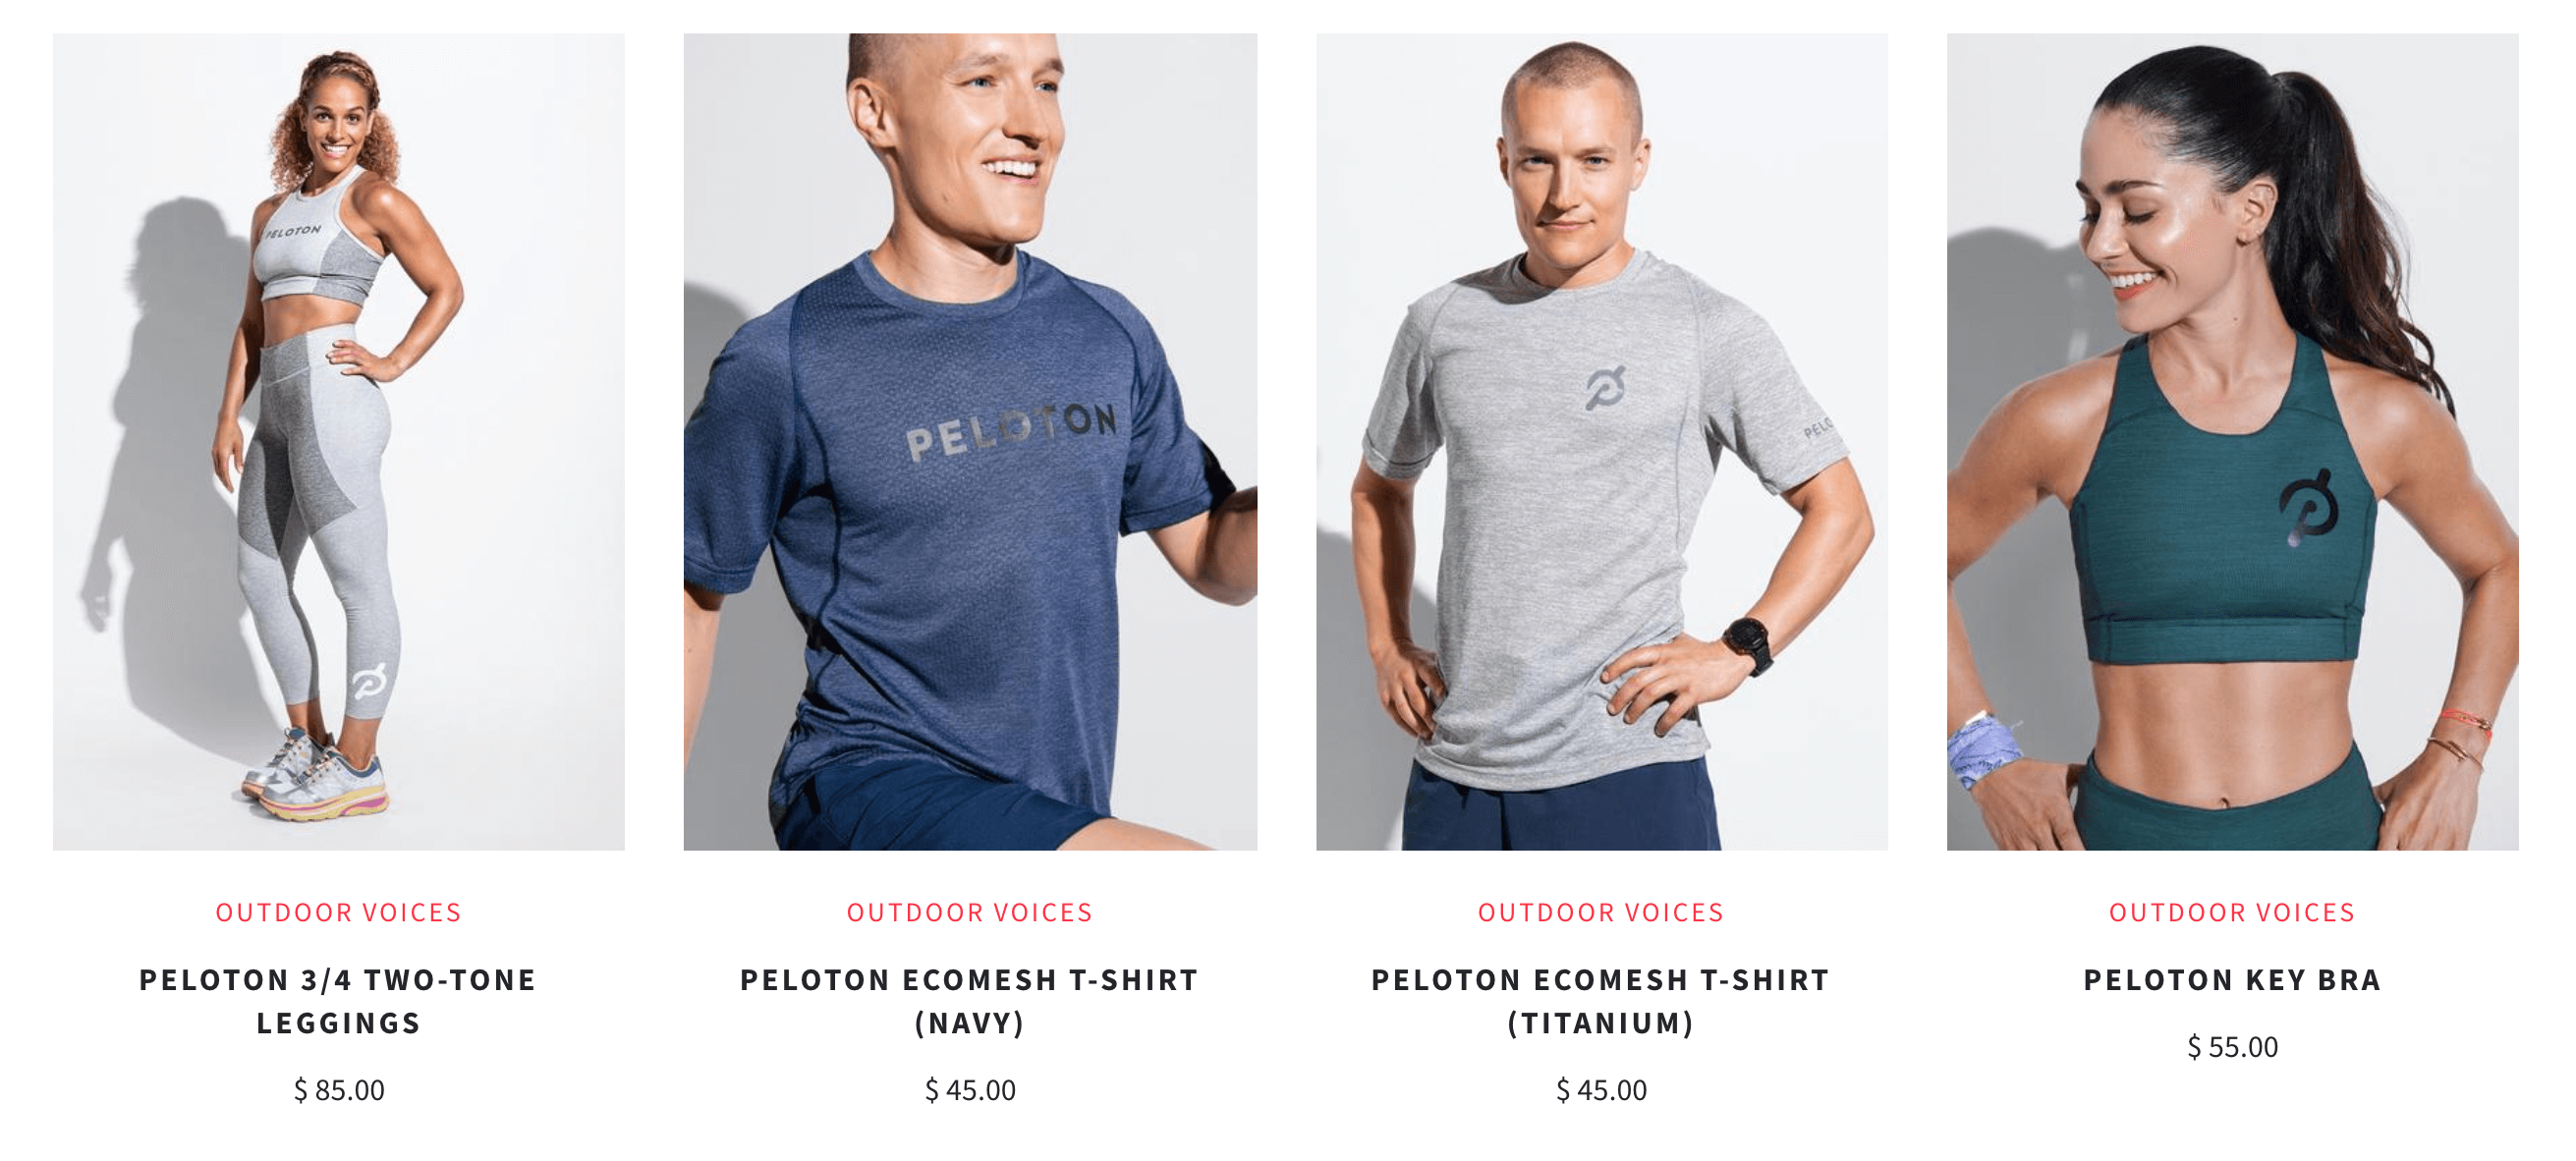 Outdoor Voices made jogging in a dress a thing all on its own. So why is it launching a 12-item capsule collection with Peloton?